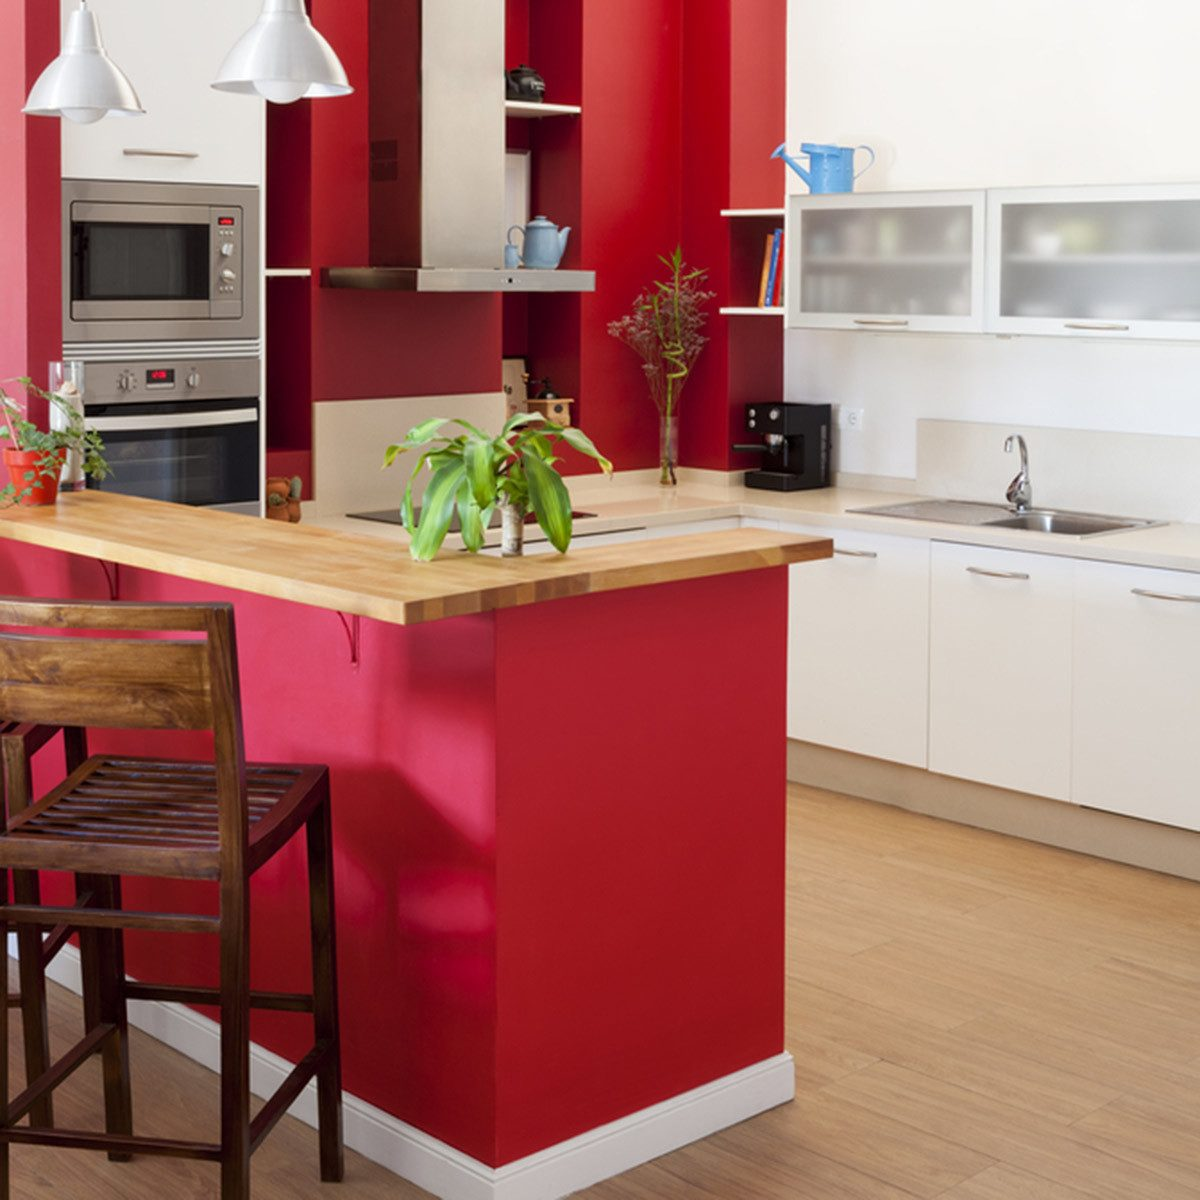 Kitchen Counter Cabinet Combinations Trending Kitchen Cabinet Colors The Family Handyman